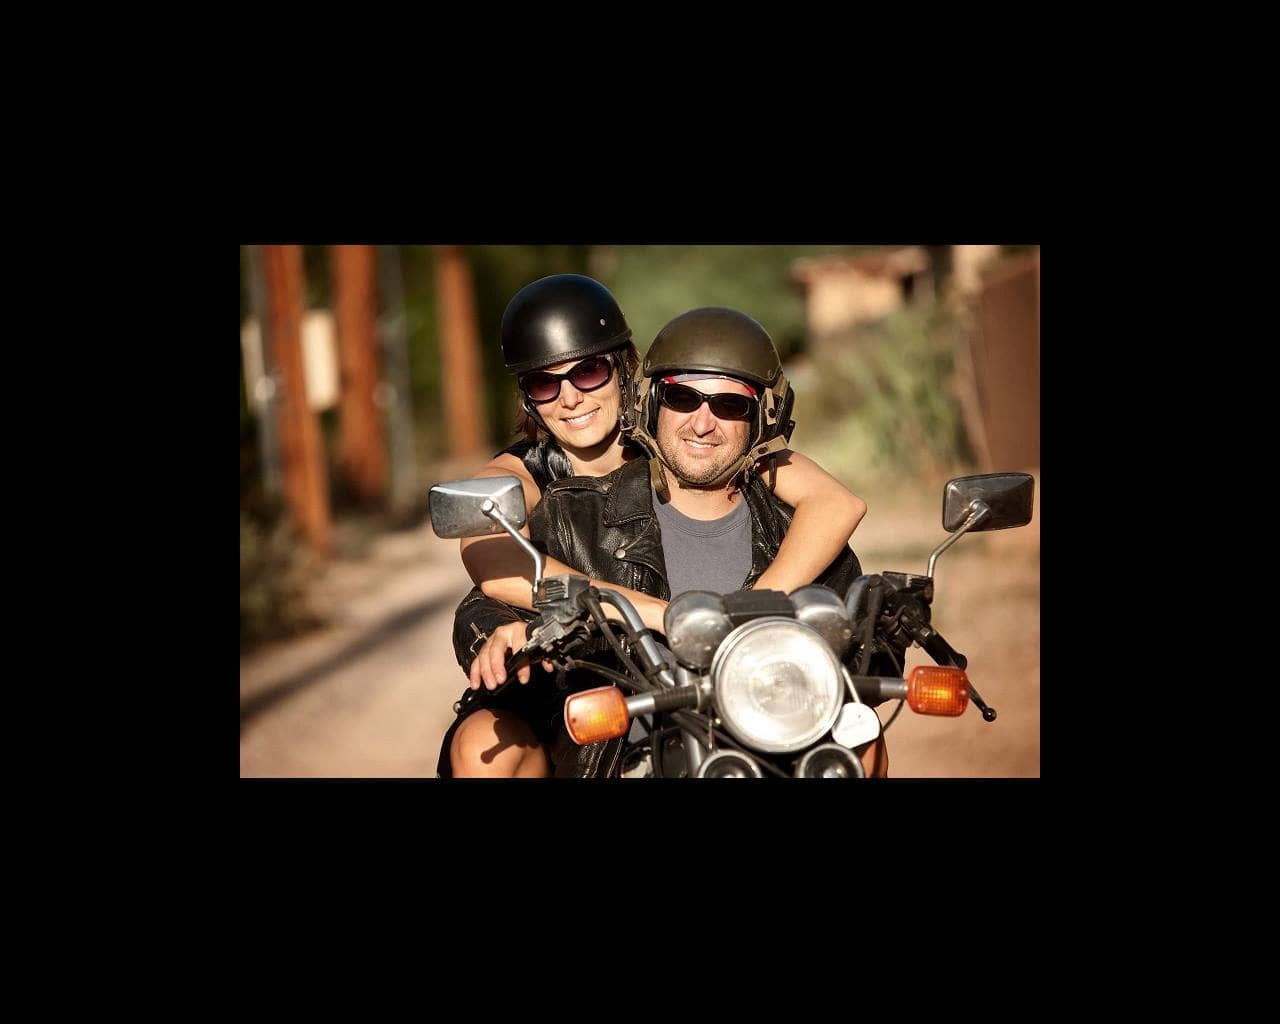 Man and woman on motorcycle